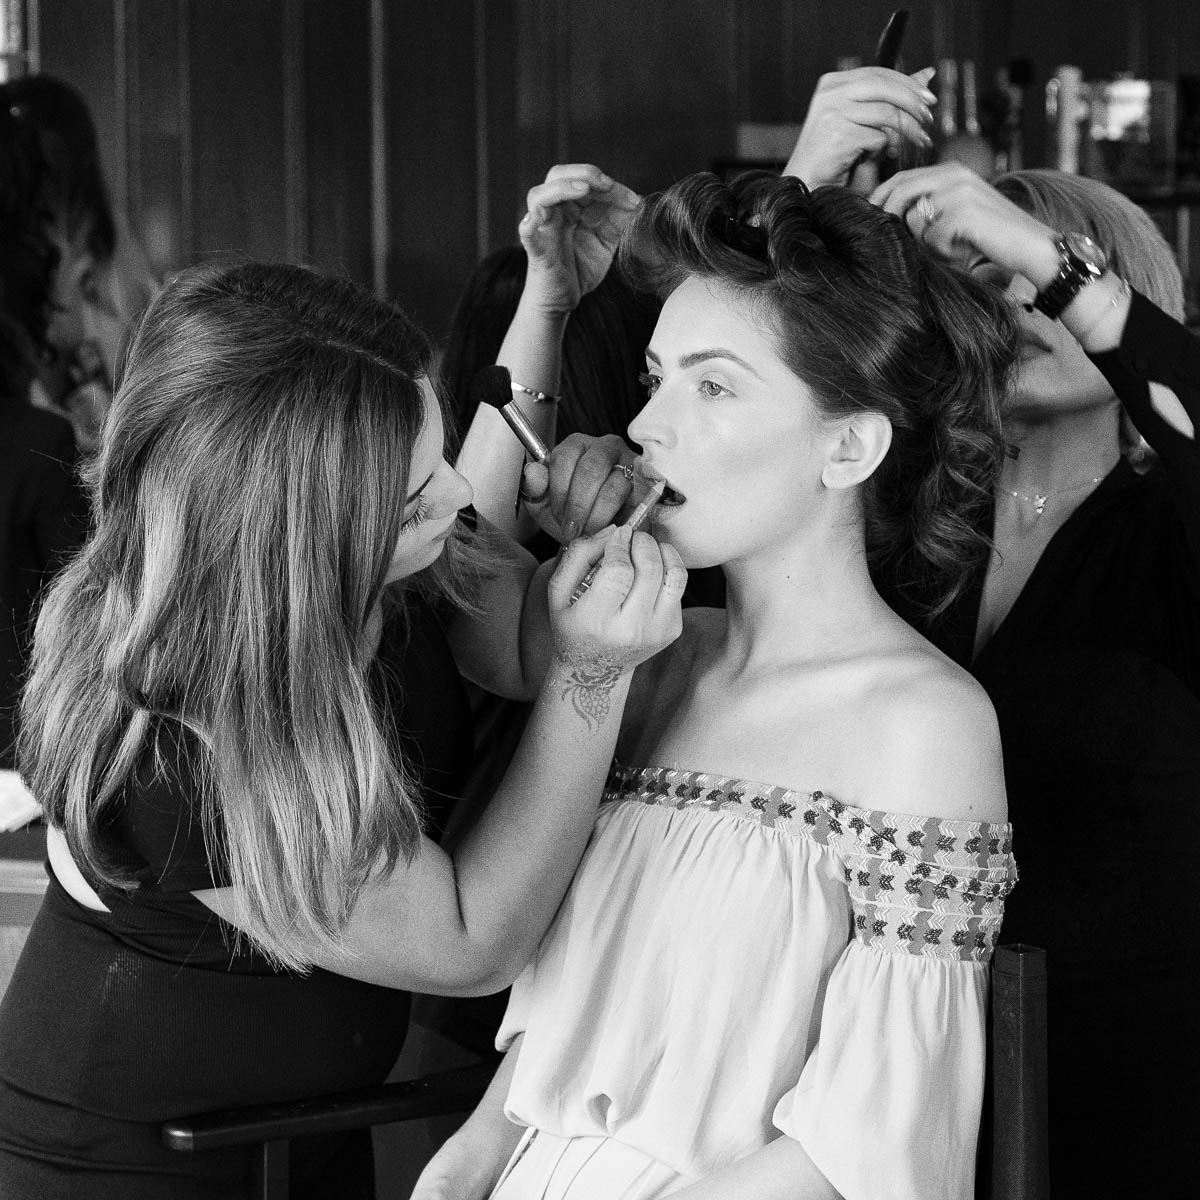 A model gets ready for a fashion show at the St Regis Hotel, Dubai